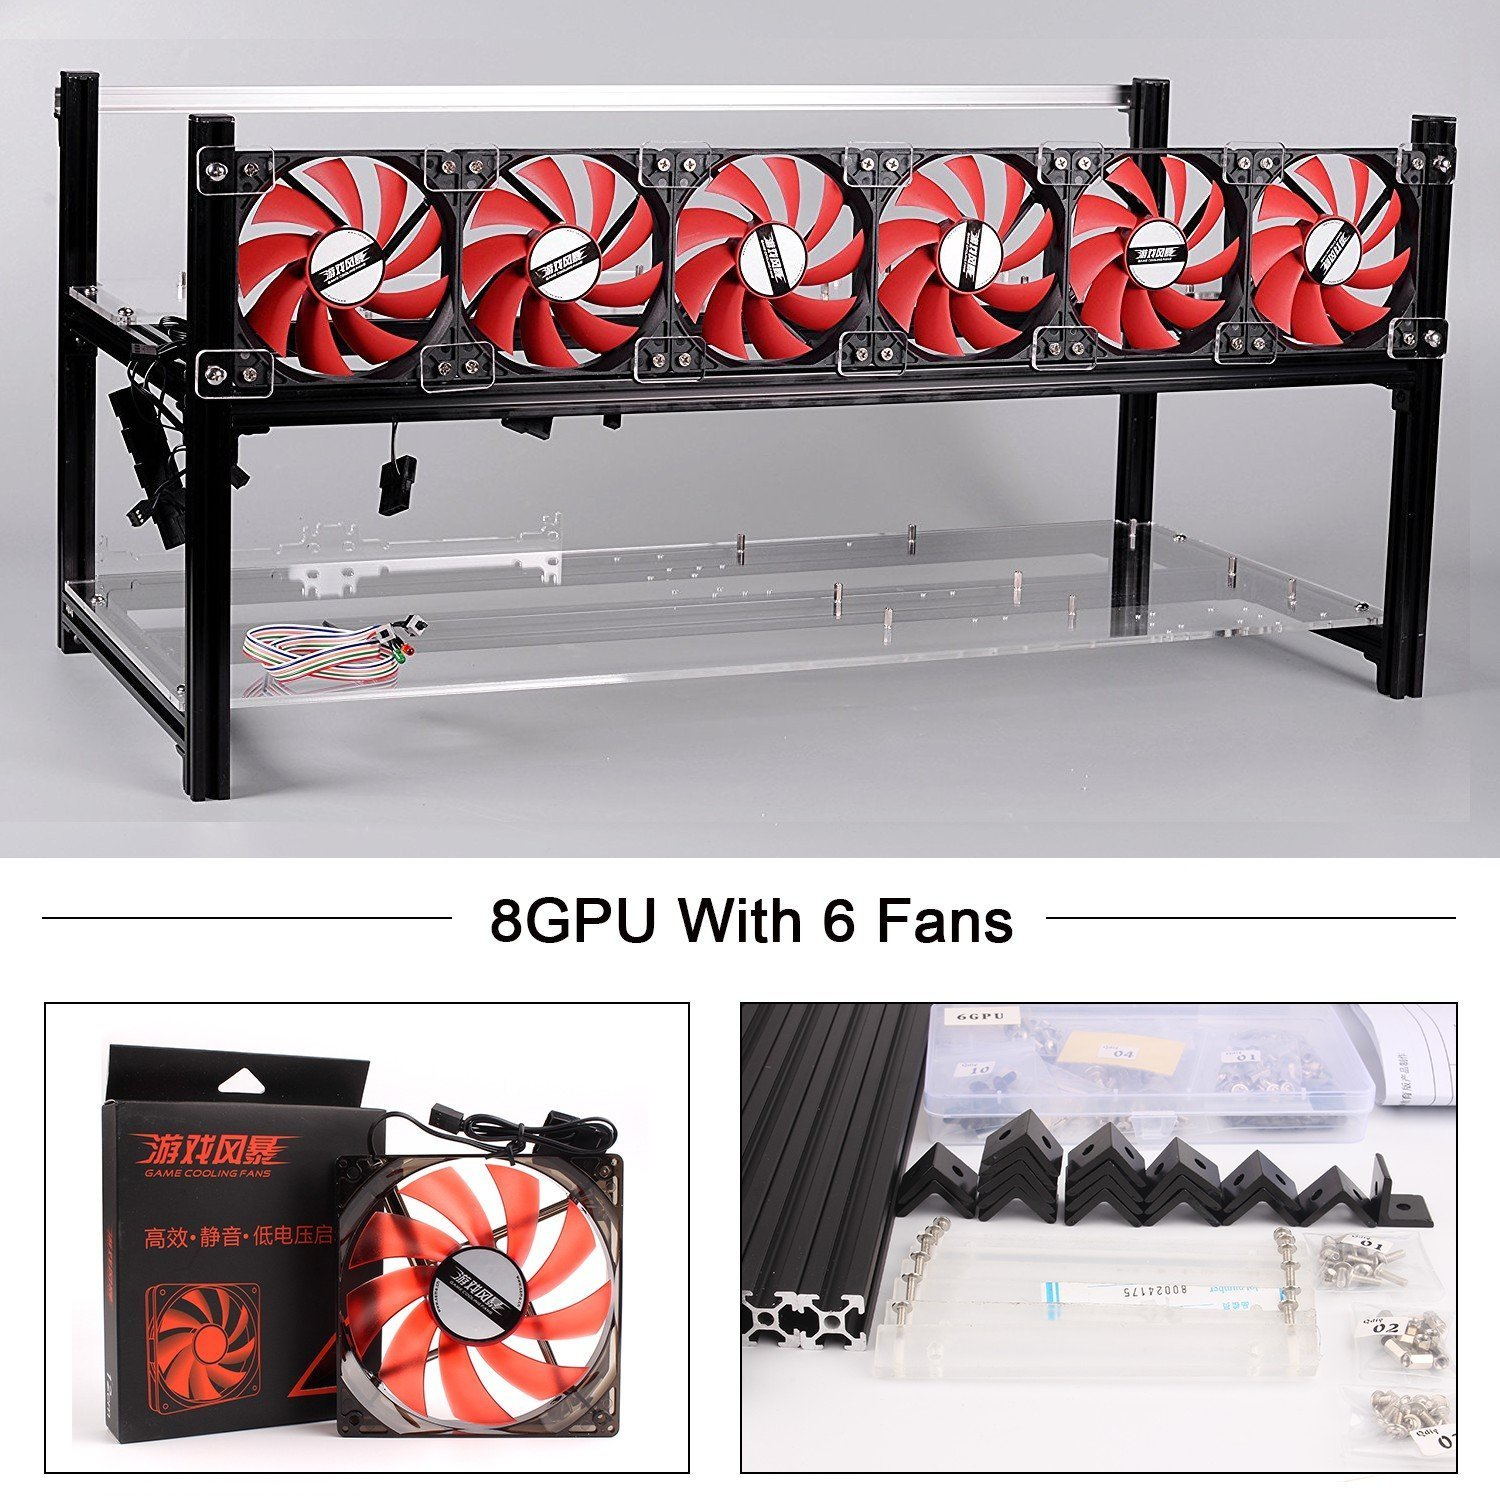 8 GPU Miner Case With 6 RedFans, Aluminum Stackable Mining Rig Open Air Frame For Ethereum(ETH)/ETC/ ZCash Ethereum,Bitcoin,Cryptocurrency and Altcoins to improve (8 GPU Black Frame With 6 Red Fans)